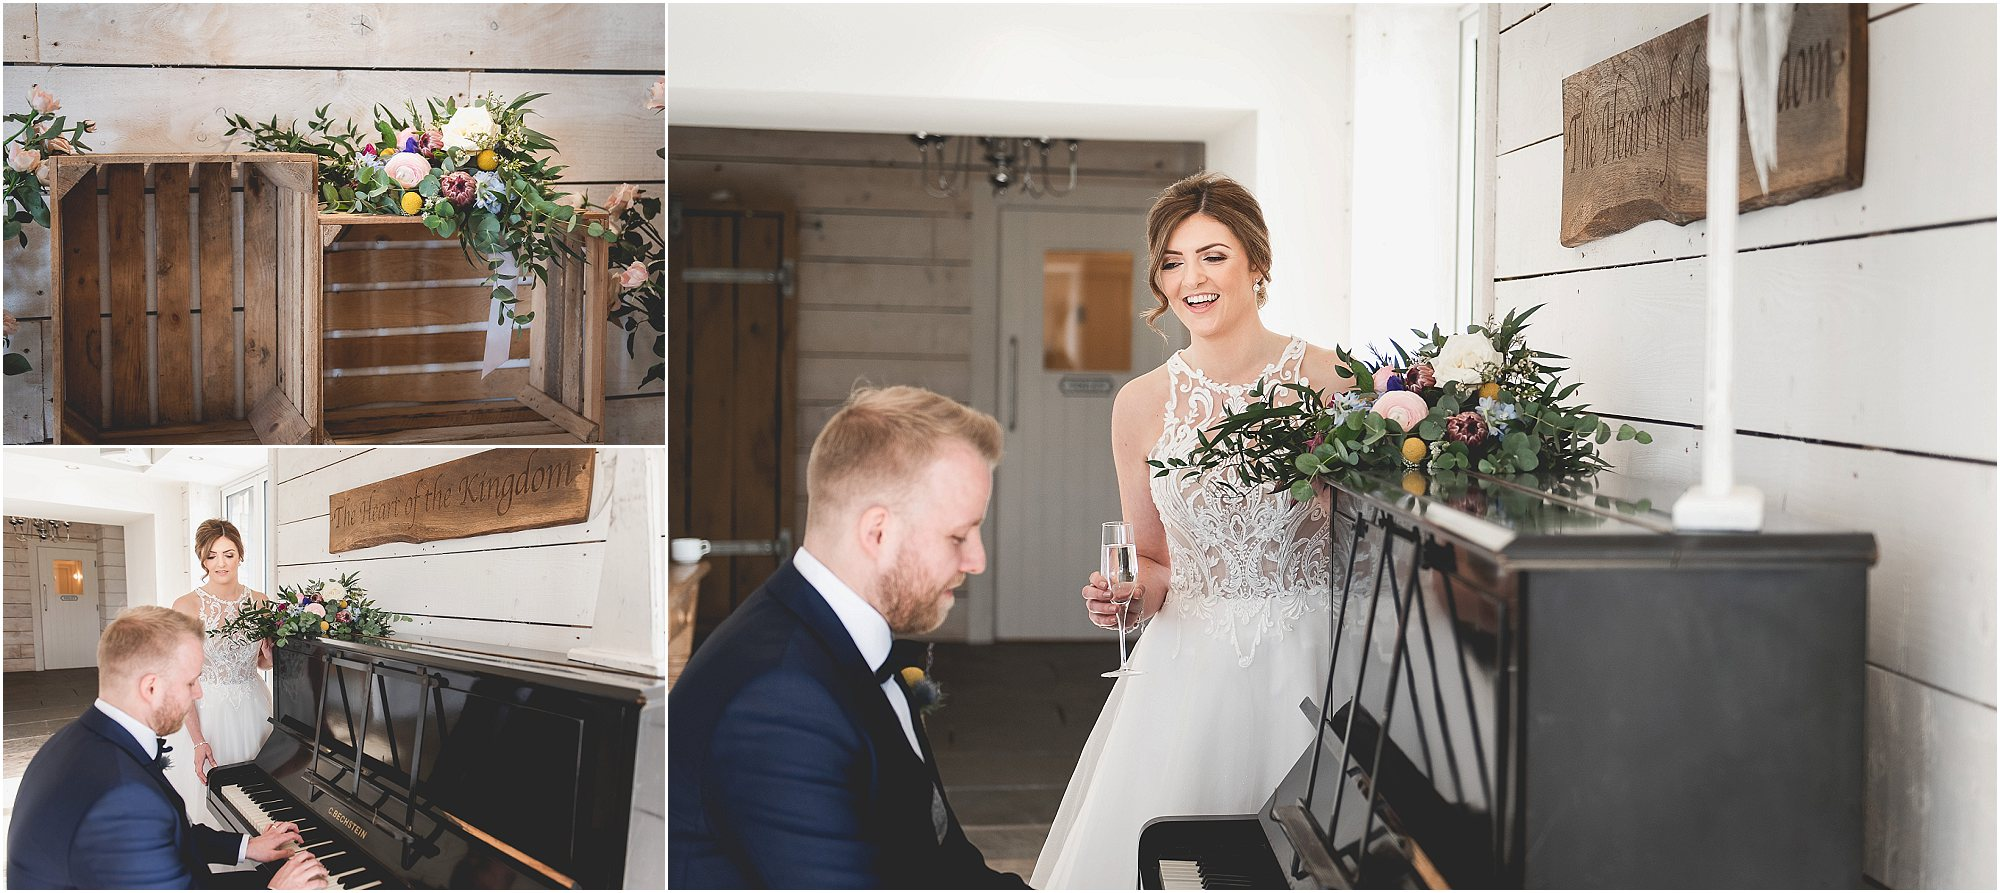 Groom plays the piano to his Bride after getting married at Bashall Barn